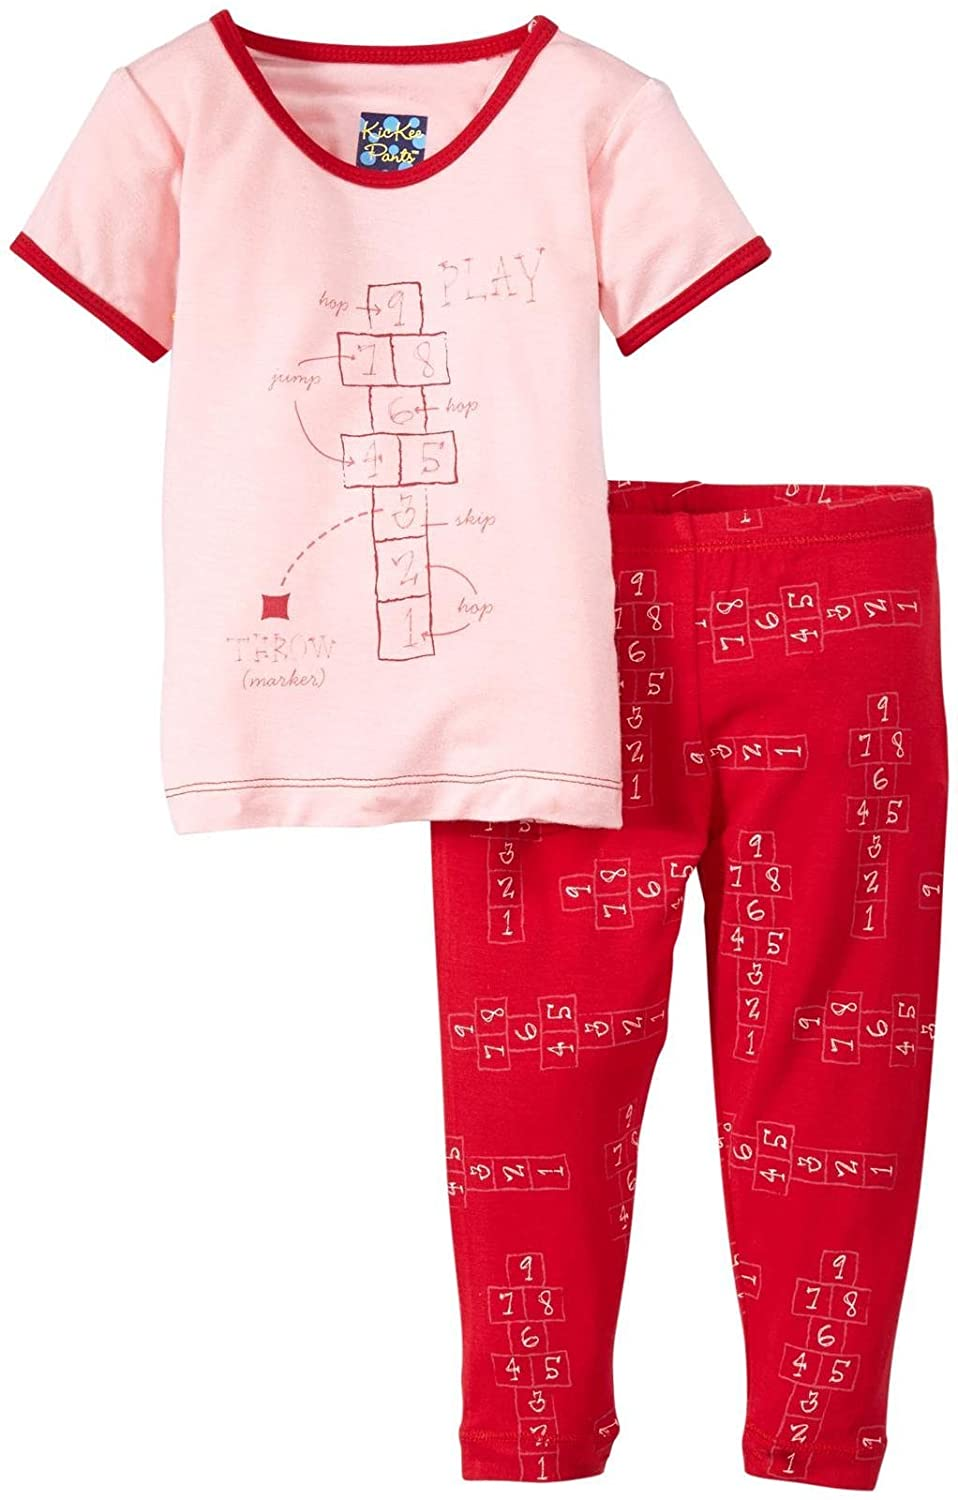 【再入荷】 KicKeeパンツパジャマセット(ベビー)バルーンHopscotch 3 0 Months - 3 B00URKWF8S Months B00URKWF8S, 卸直営宝寿堂():45295eb4 --- turtleskin-eu.access.secure-ssl-servers.info